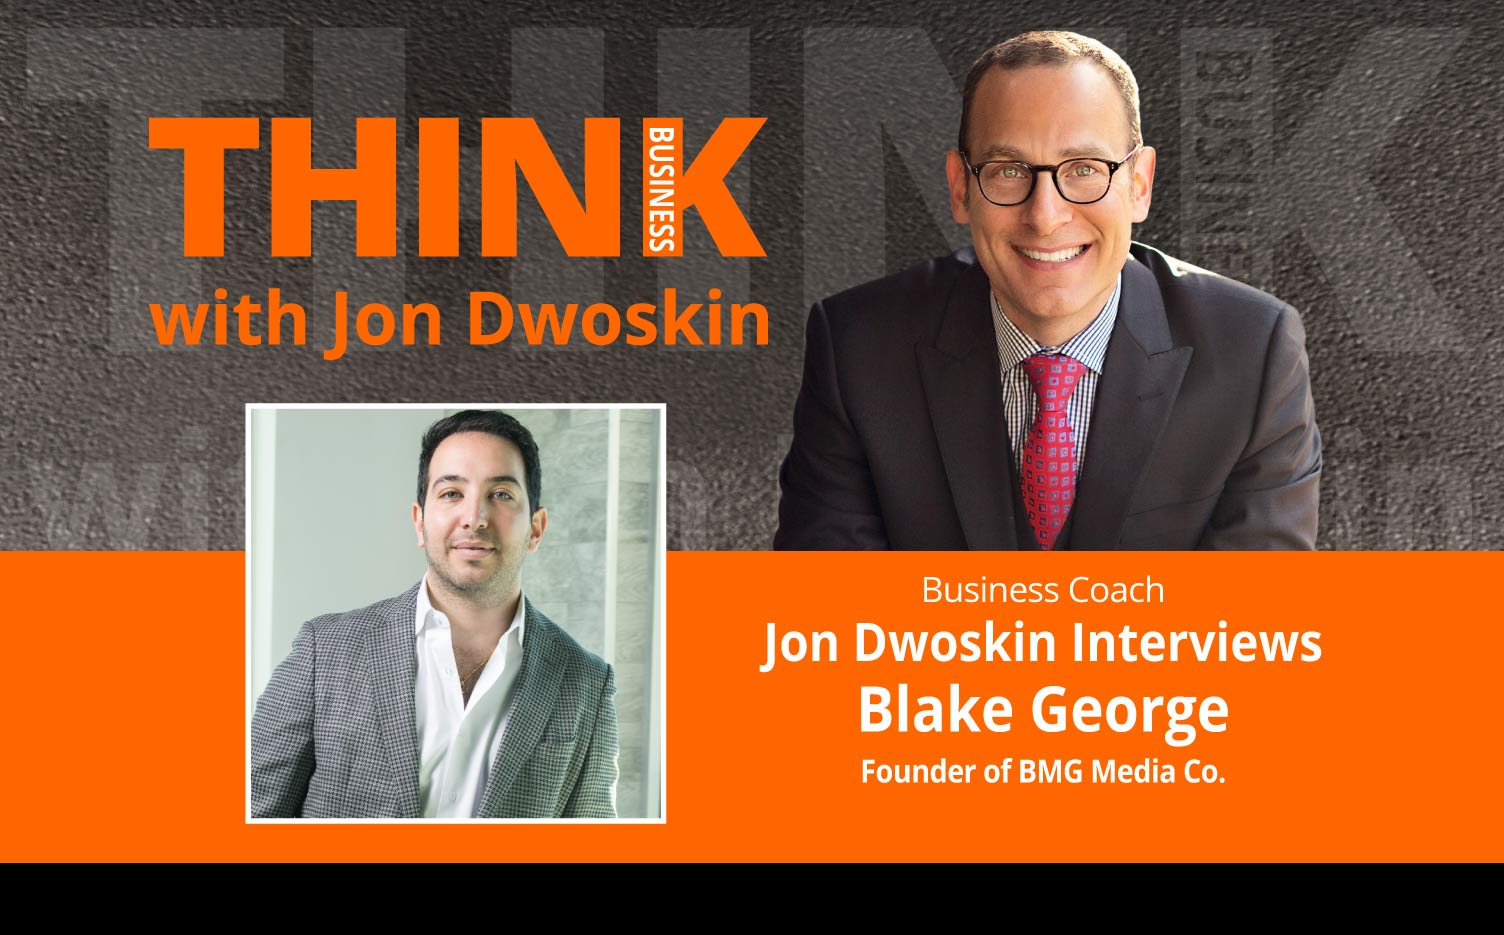 THINK Business Podcast: Jon Dwoskin Interviews Blake George, Founder of BMG Media Co.